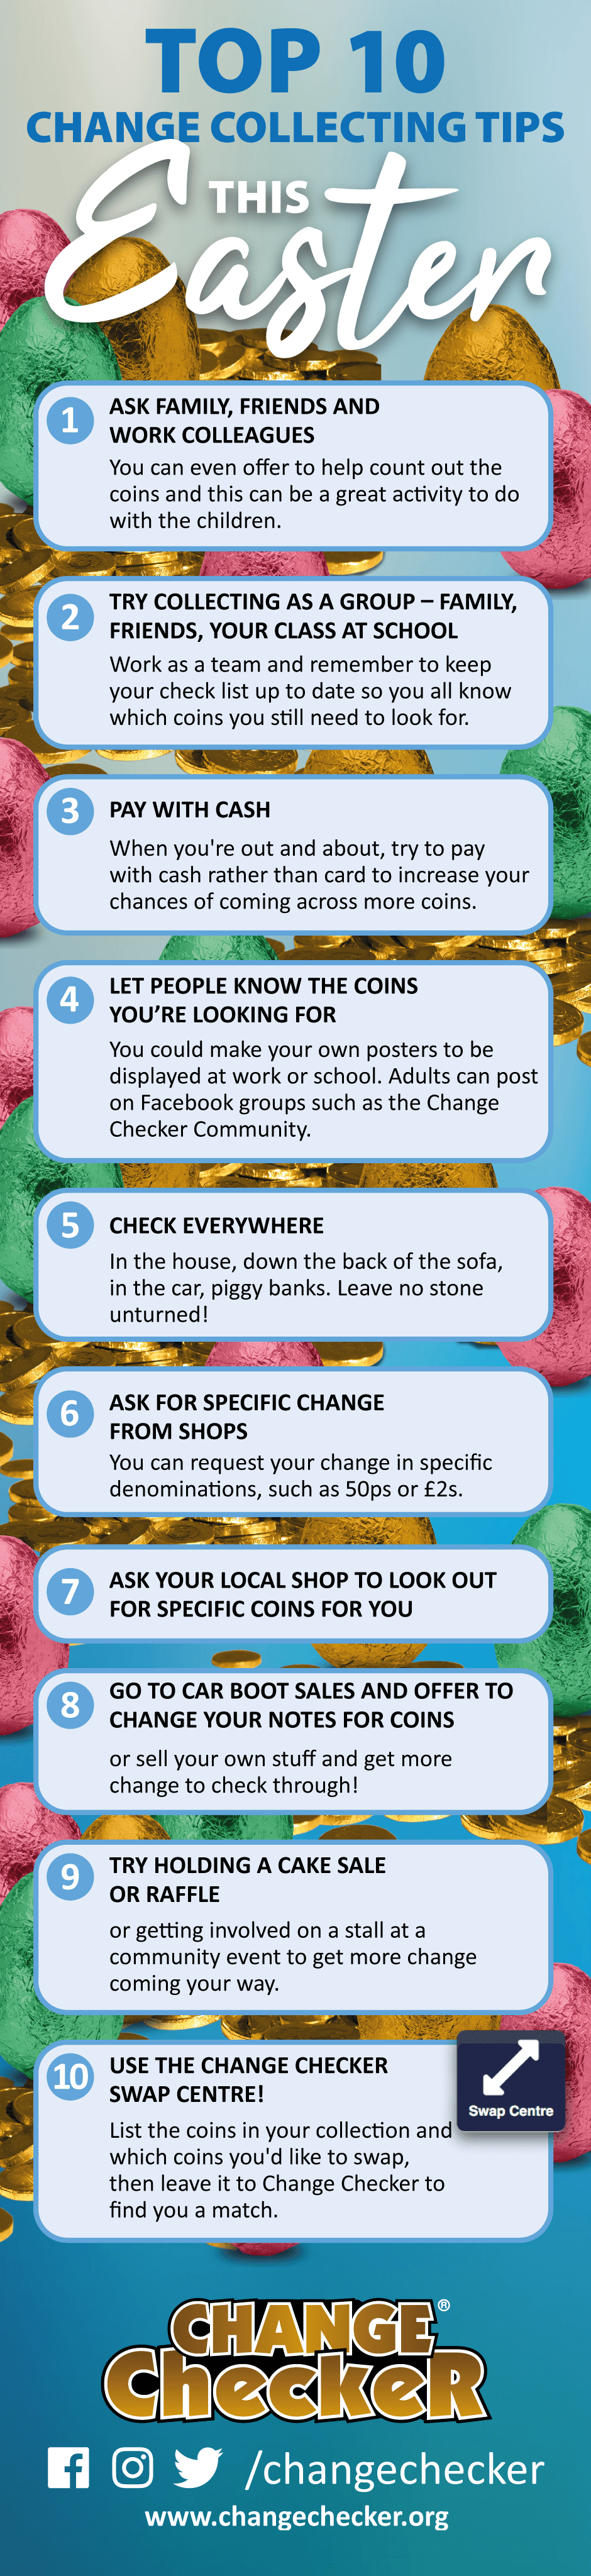 Top 10 Change Collecting Tips this Easter